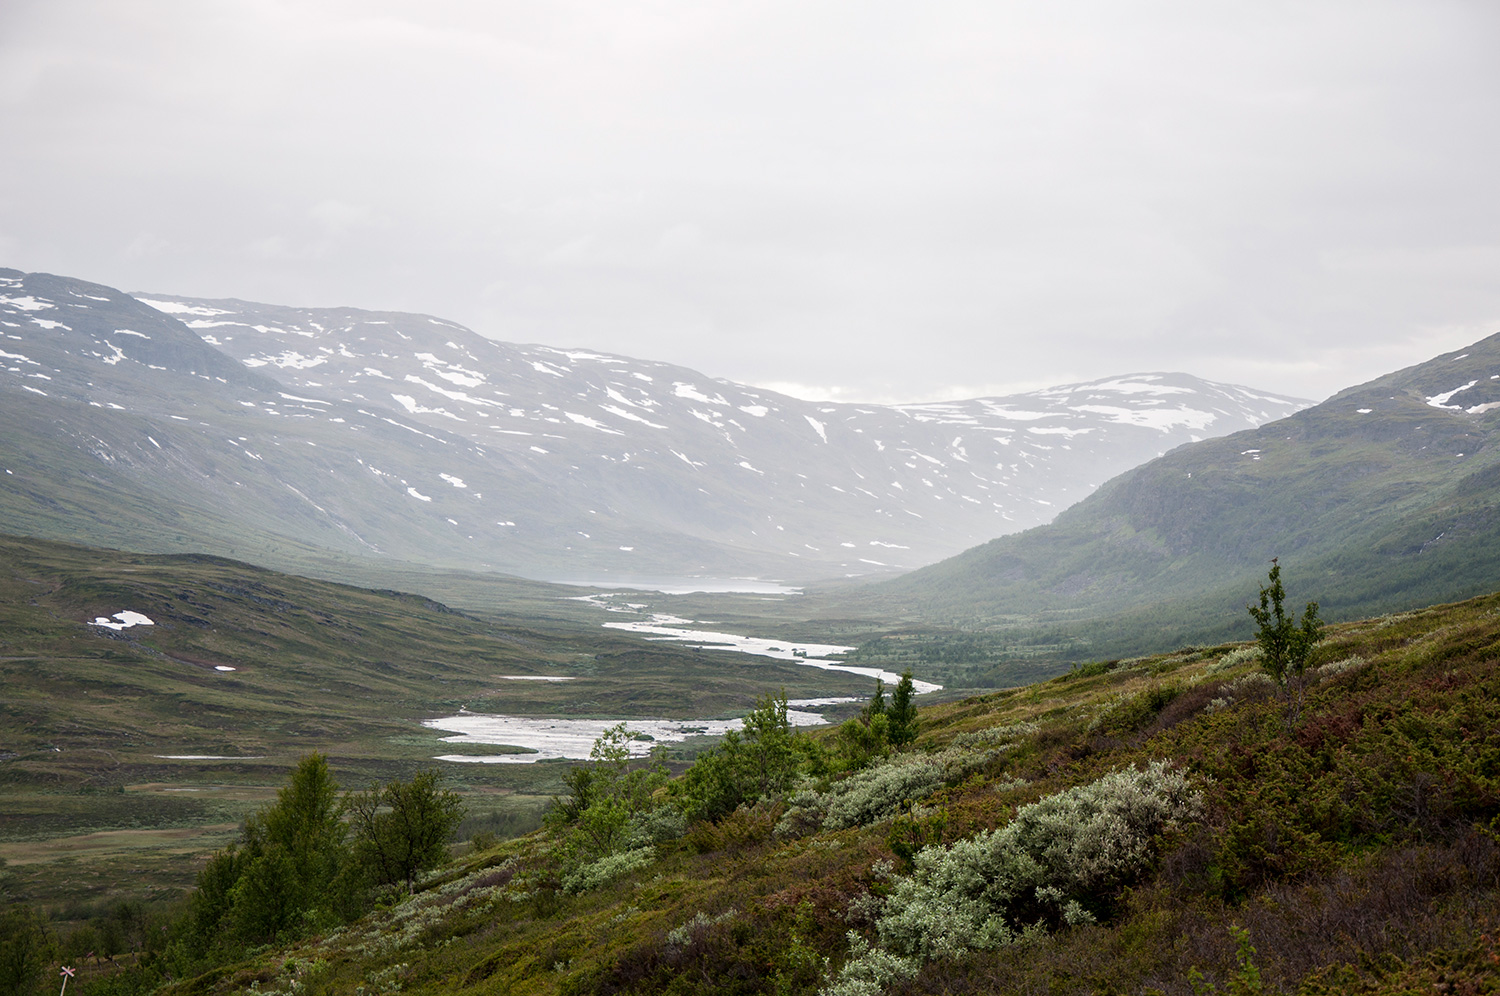 Valley while hiking in Abisko